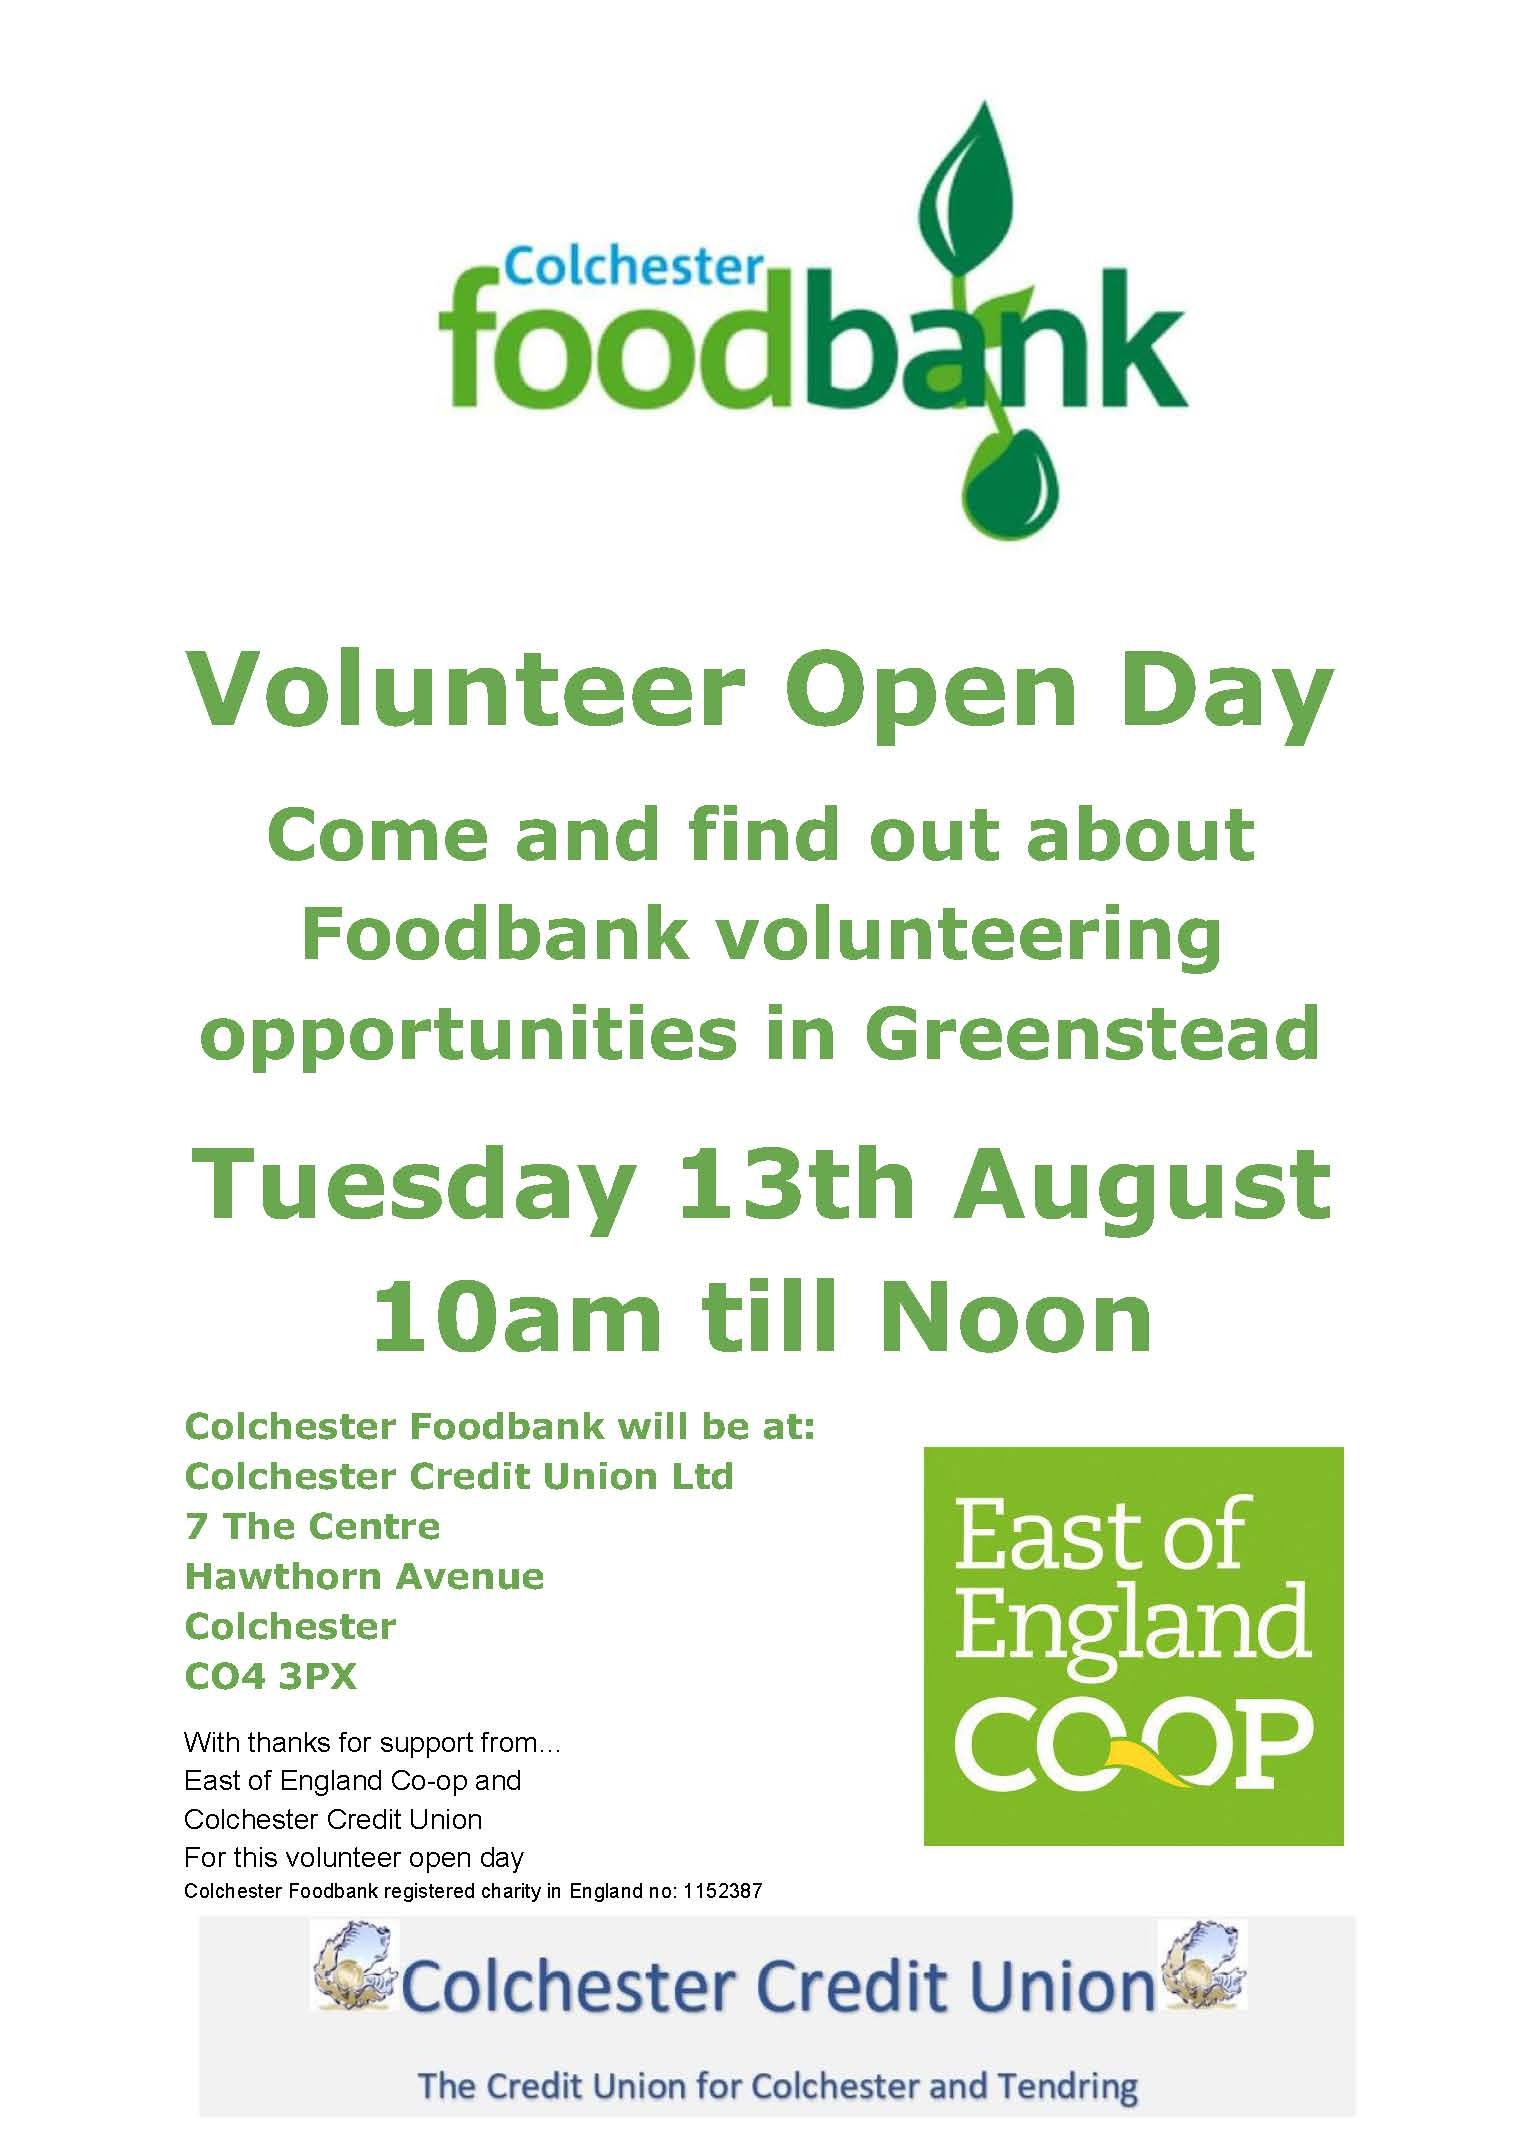 Colchester foodbank. Volunteer open day. Tuesday 13th August 10am til noon. Come and find out about foodbank volunteering opportunities in Greenstead. Colchester Foodbank will be at: Colchester Credit Union Ltd 7 The Centre Hawthorn Avenue Colchester CO4 3PX With thanks for support from… East of England Co-op and Colchester Credit Union For this volunteer open day Colchester Foodbank registered charity in England no: 1152387